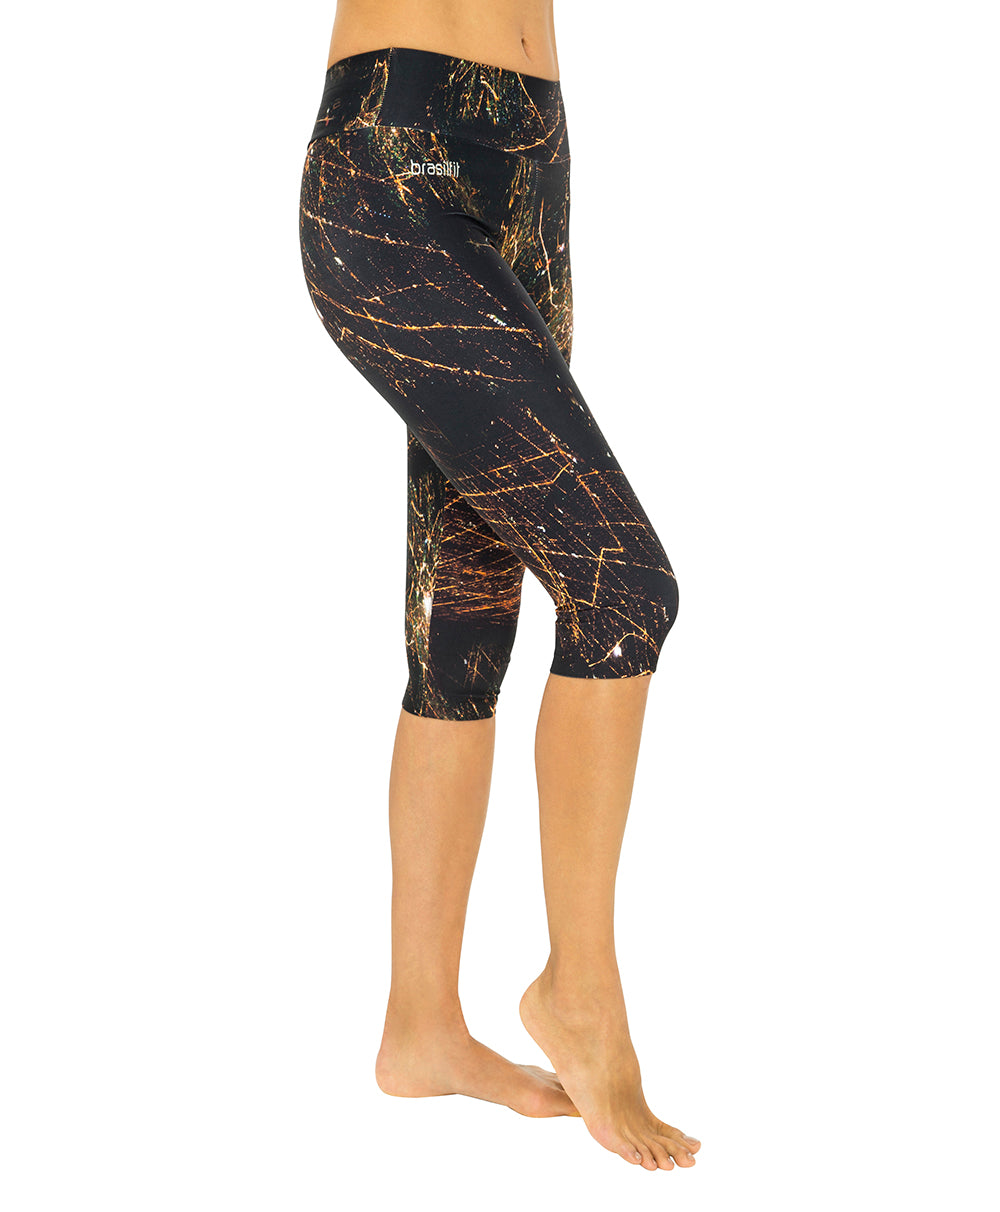 Cosmic Karma Under Knee Legging